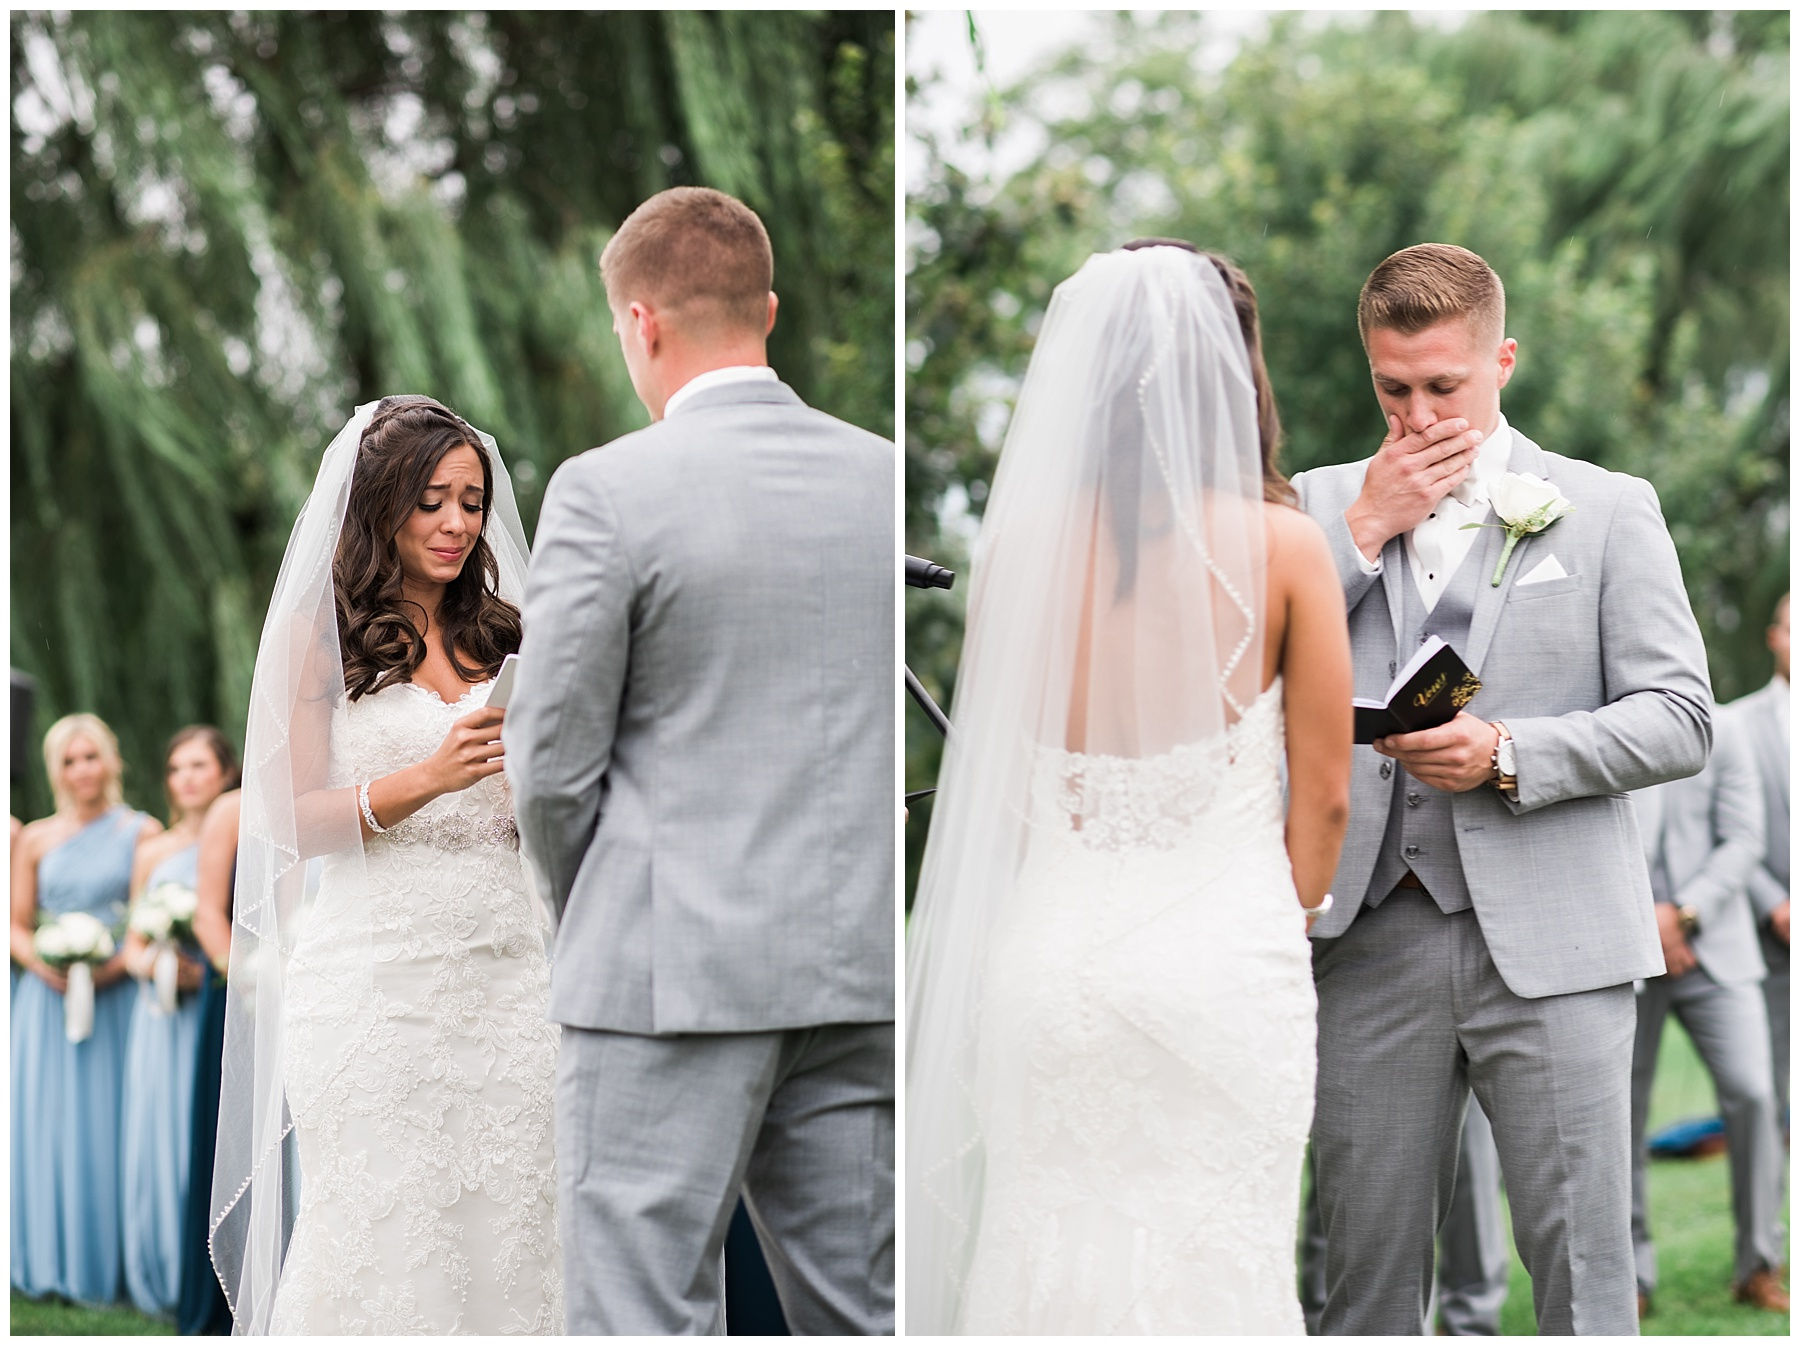 pennsylvania wedding photographer outdoor wedding HARTZELL-64.jpg